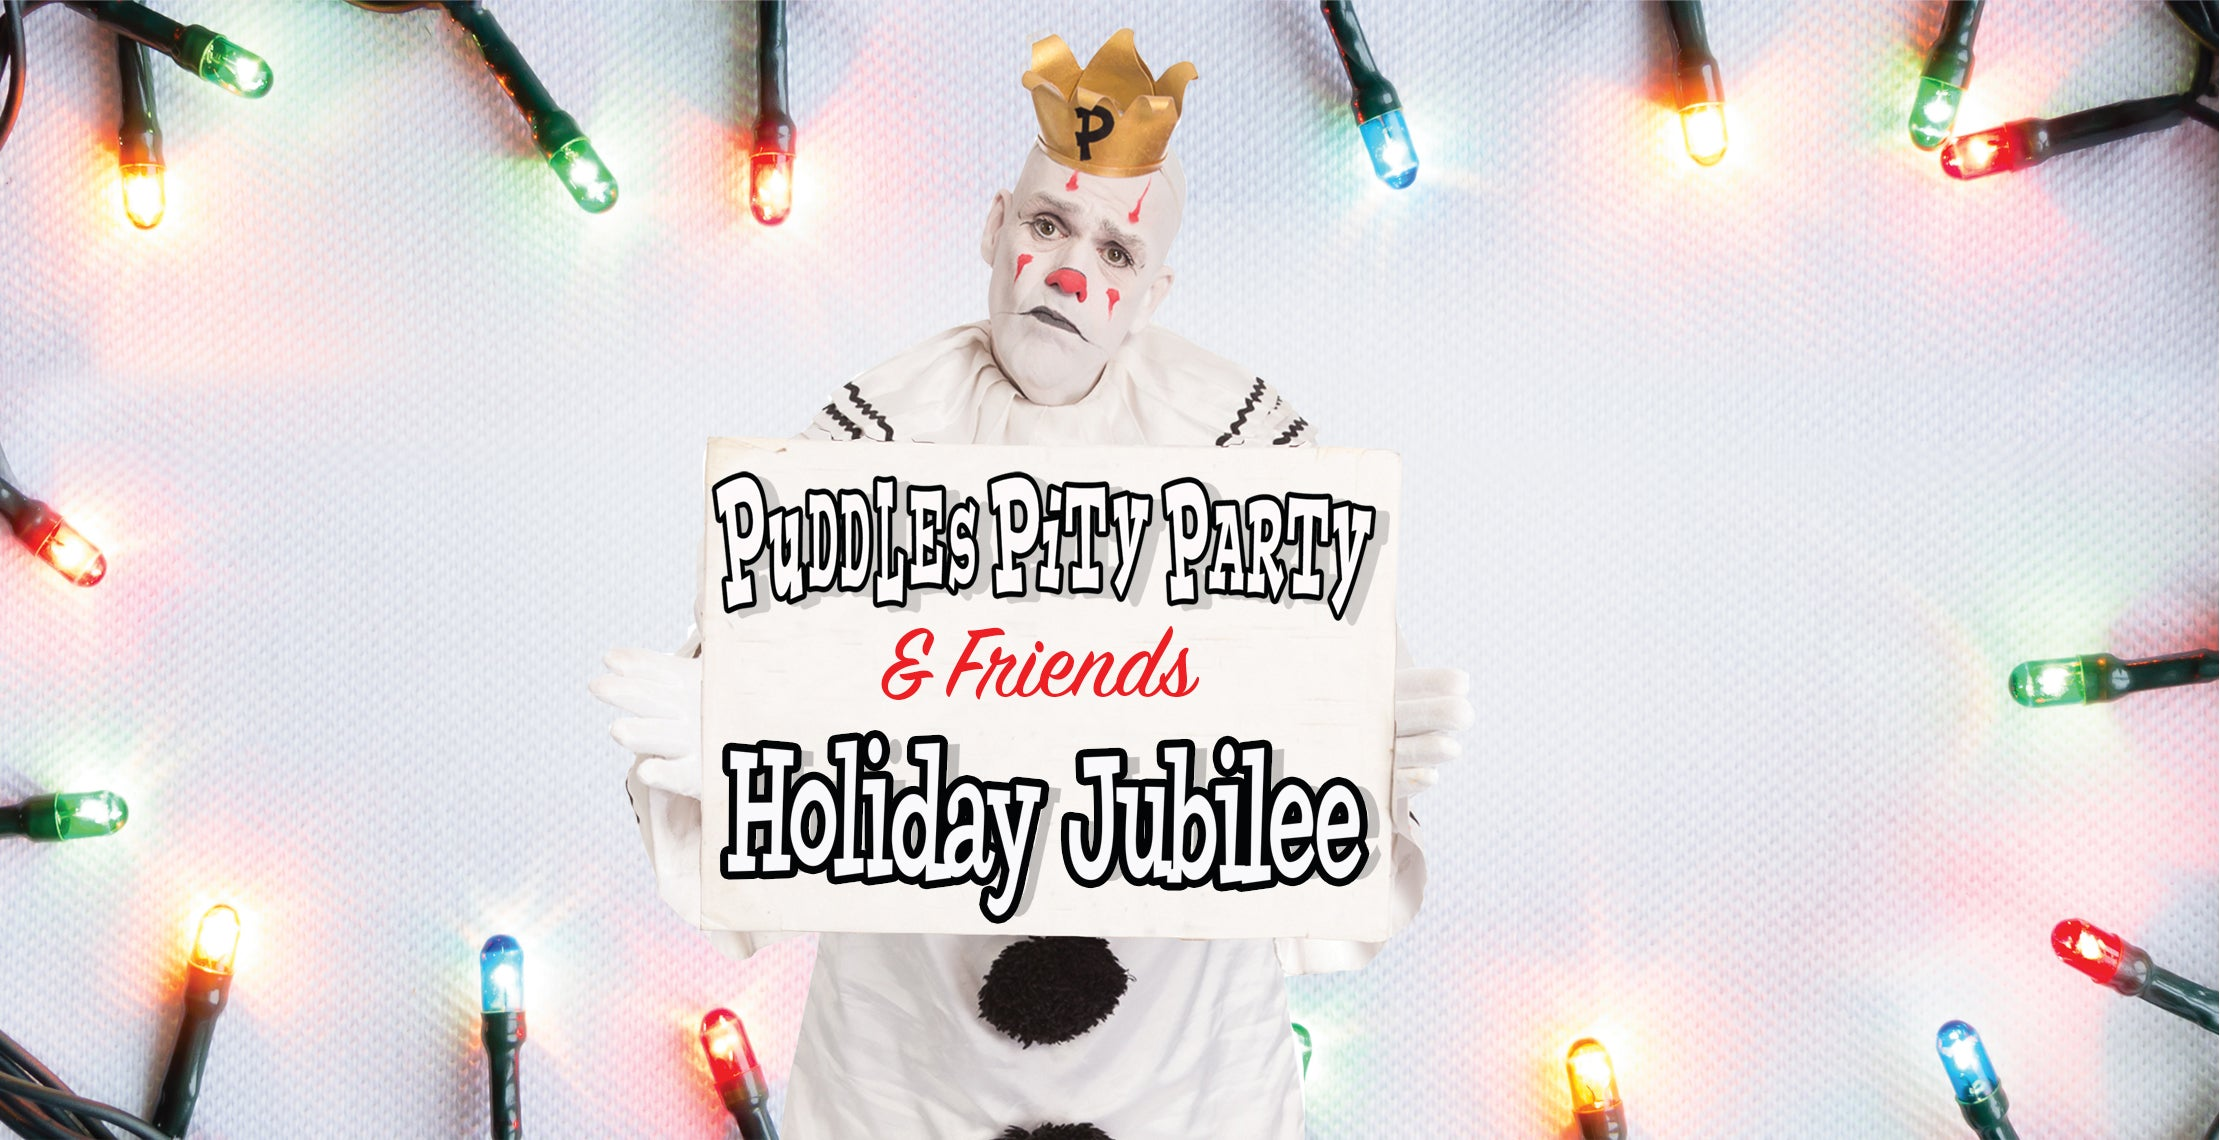 Puddles Pity Party & Friends Holiday Jubilee